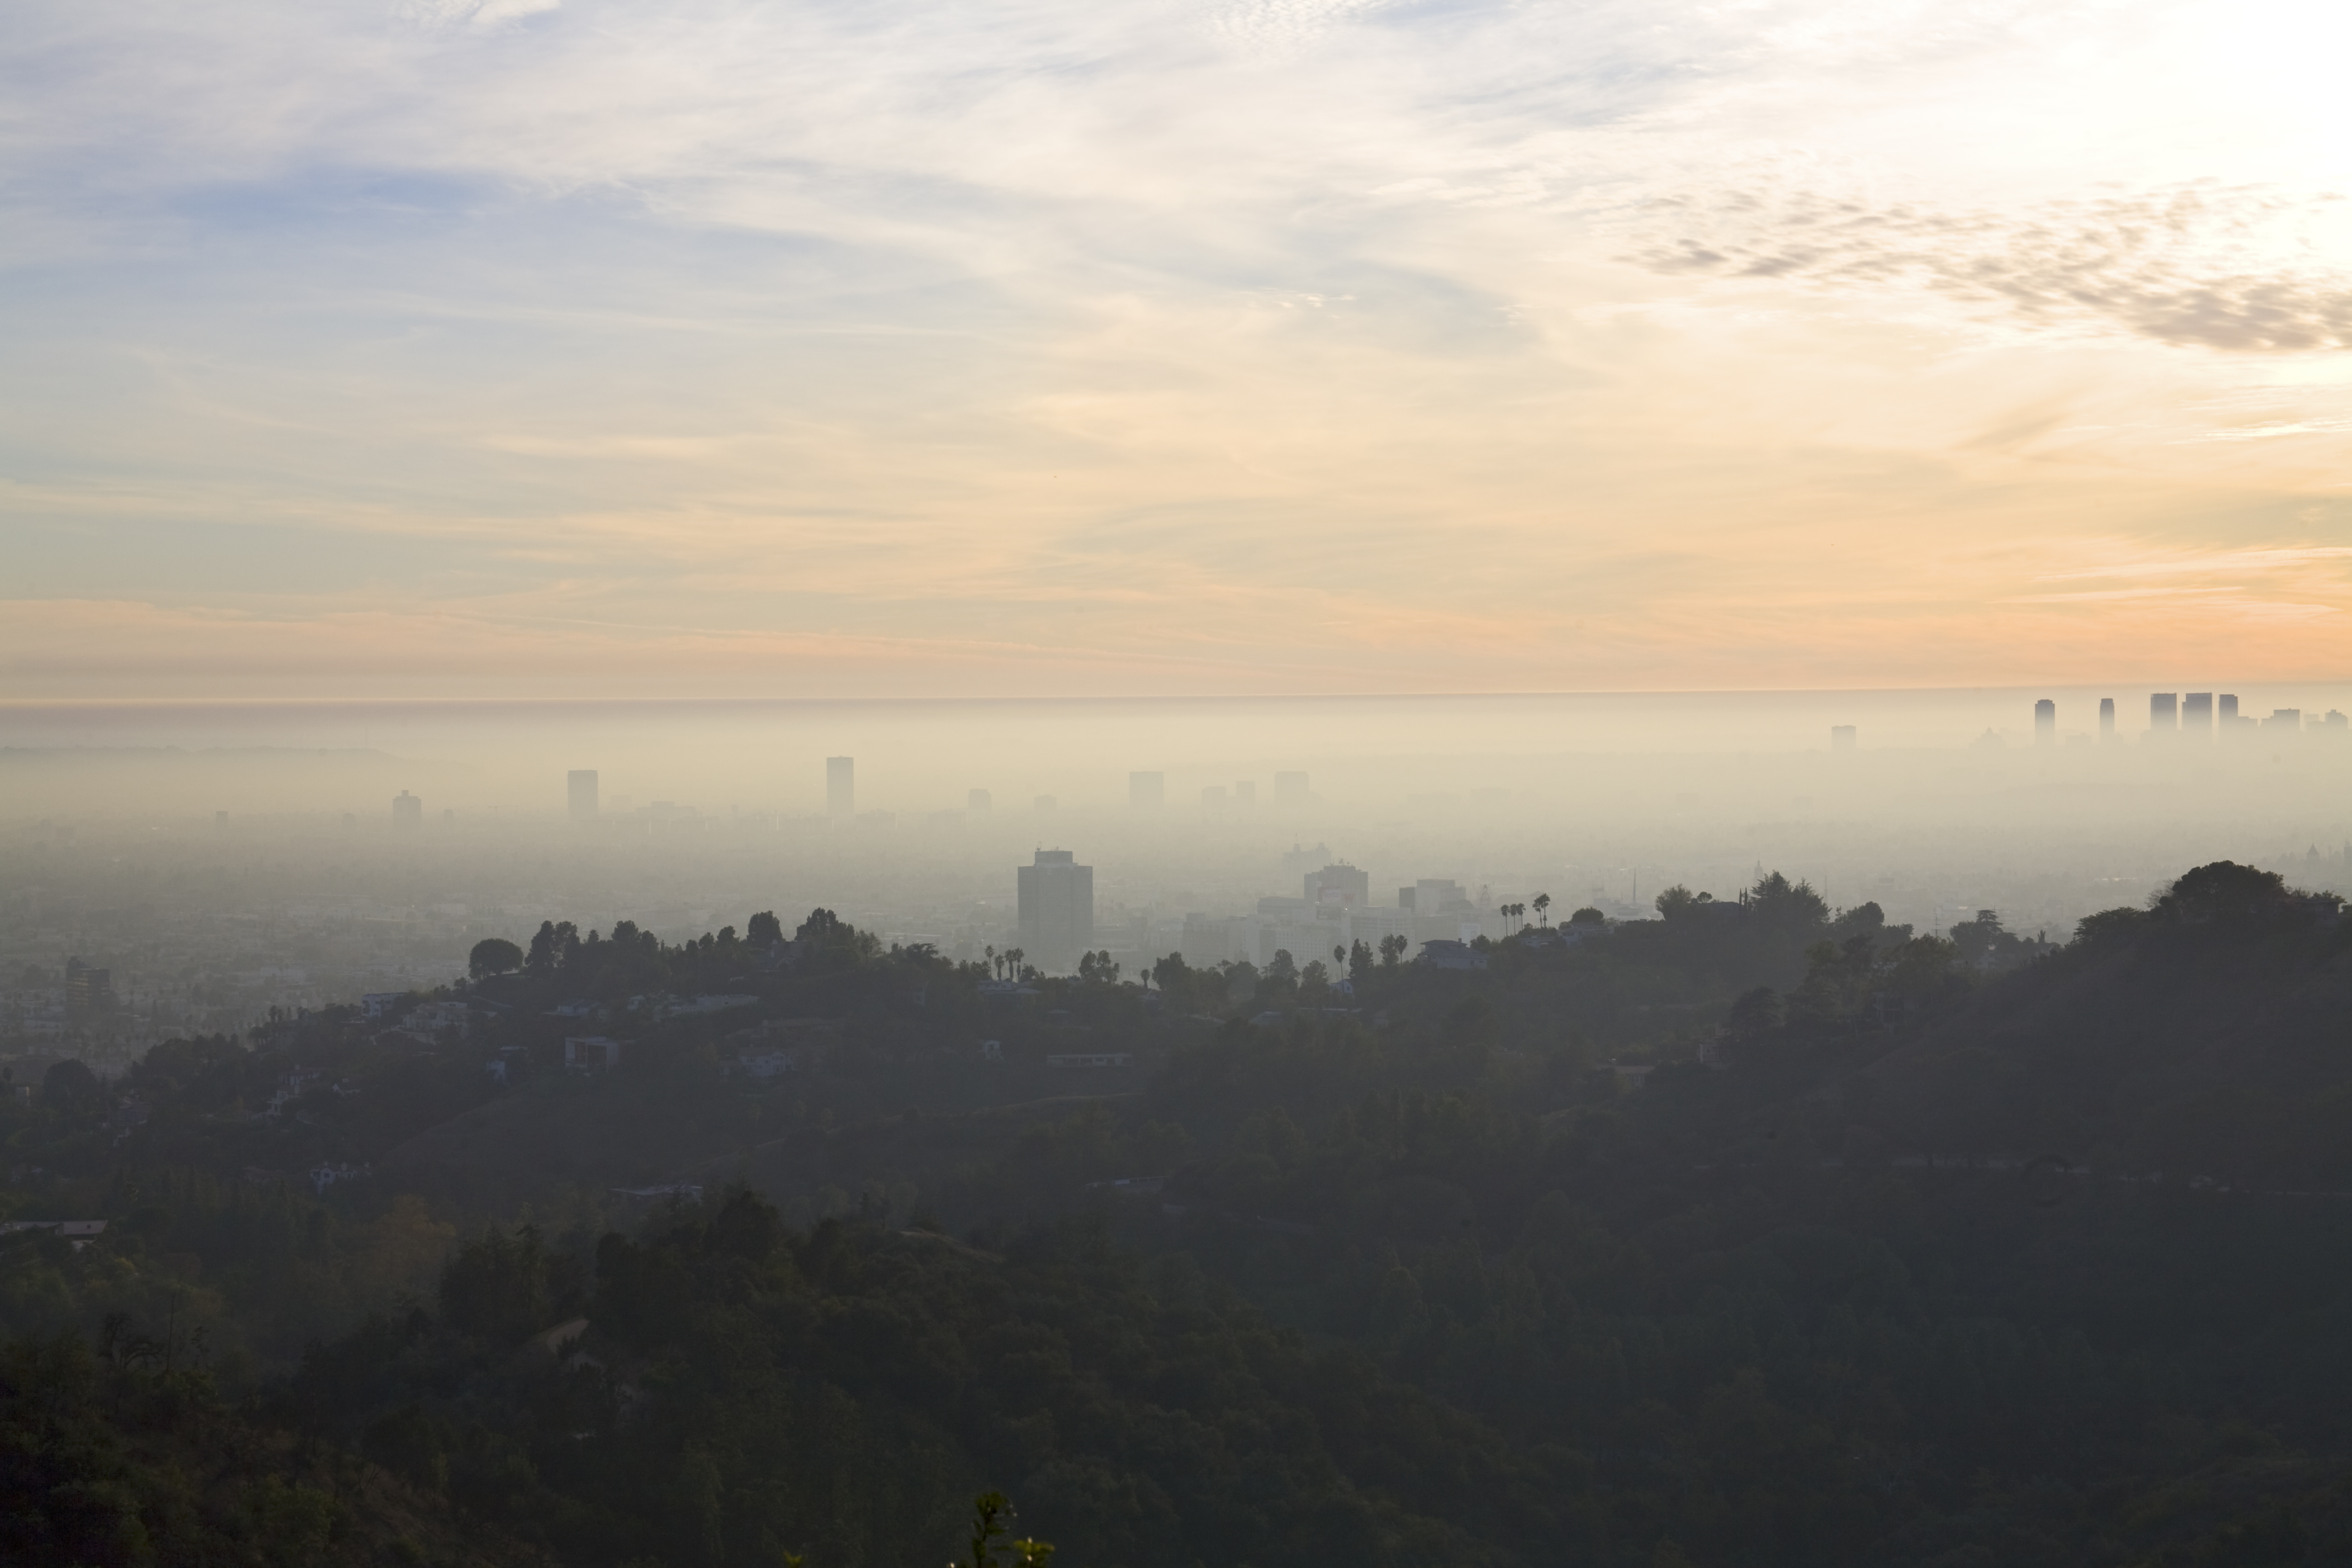 Hollywood Hills with Smog and Fog